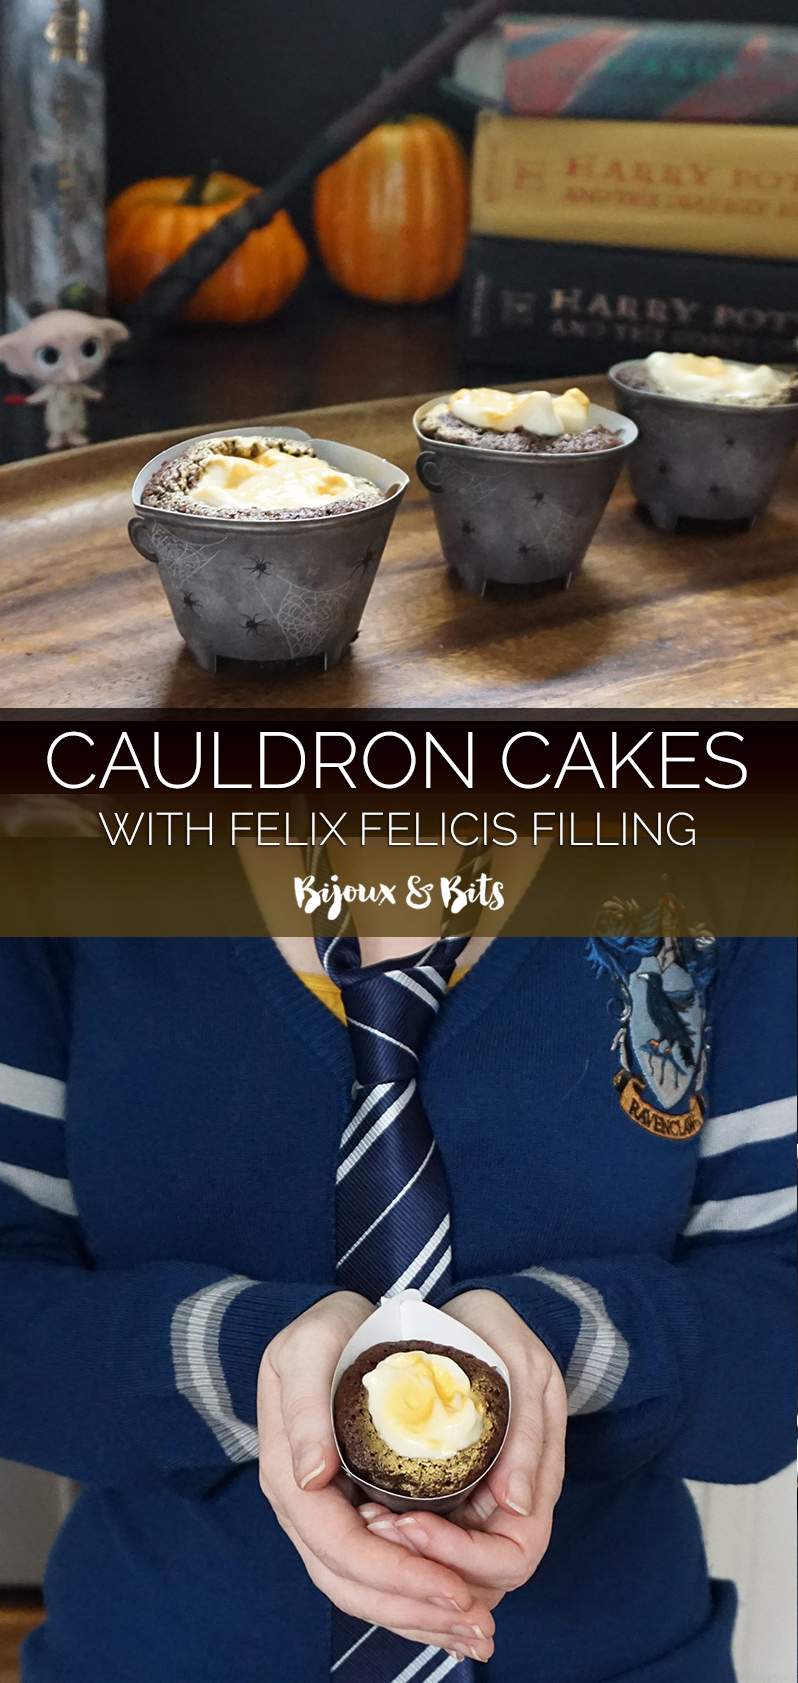 Cauldron cakes with Felix Felicis filling